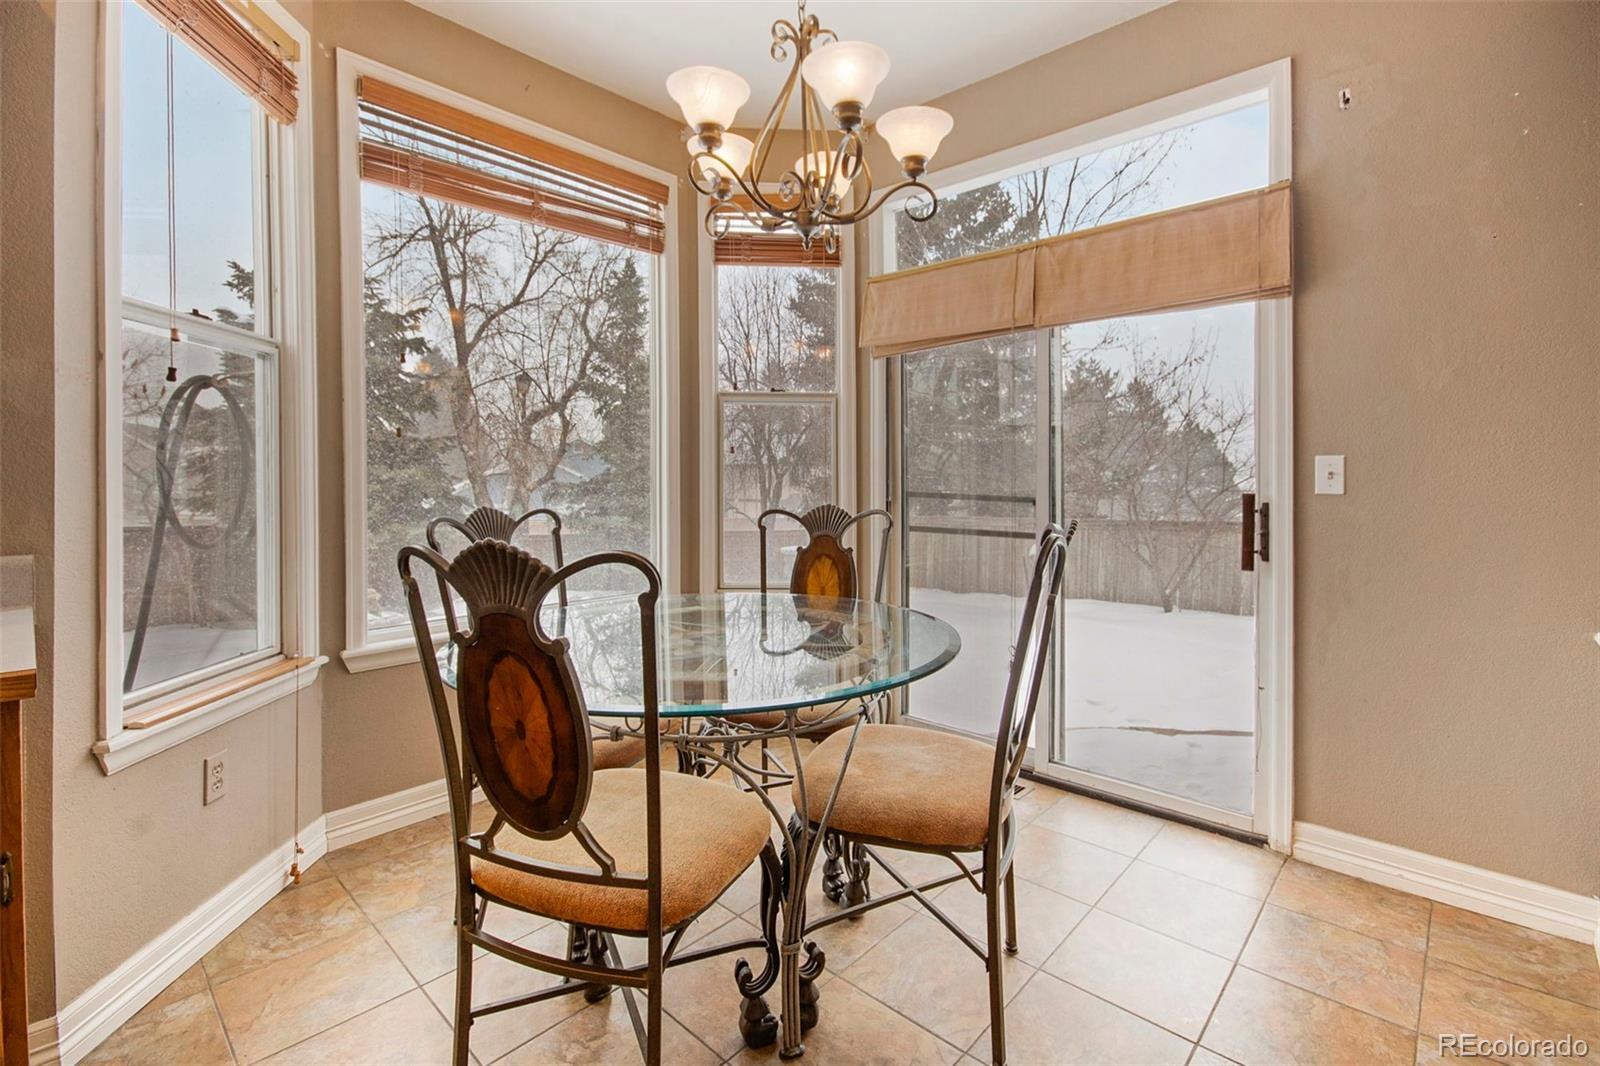 MLS# 2528166 - 10 - 5521 Wickerdale Place, Highlands Ranch, CO 80130